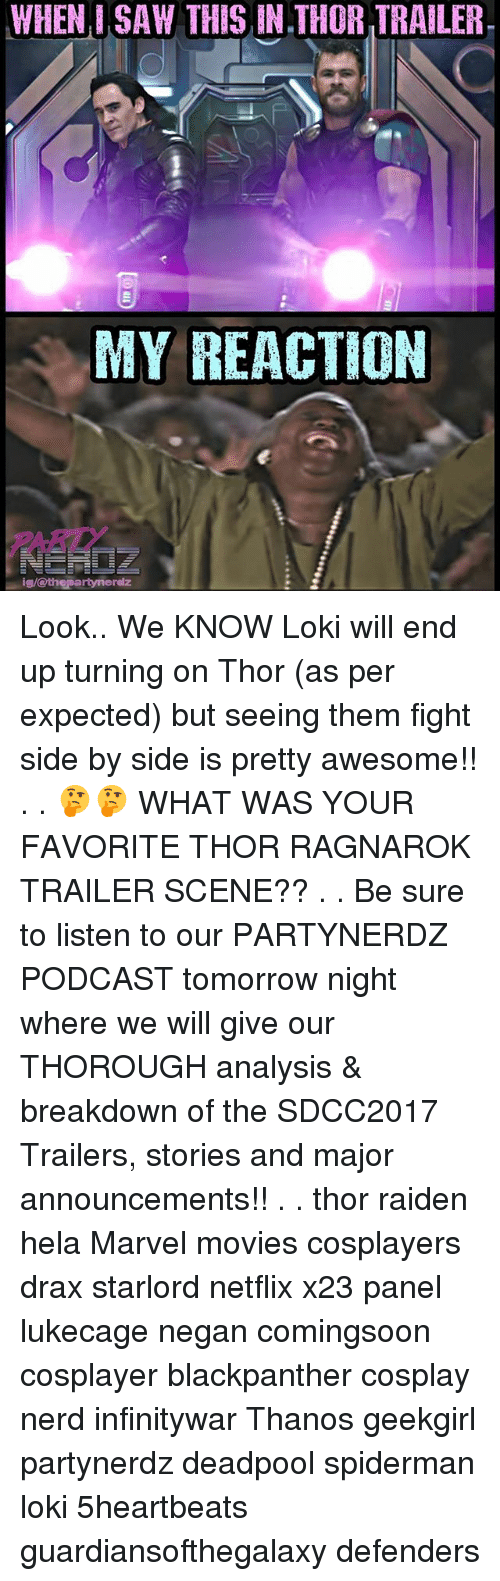 Memes, Movies, and Nerd: WHEN, I SAW THIS IN THOR TRAILER.  MY REACTION  ARITY  ig/othepartynerdz Look.. We KNOW Loki will end up turning on Thor (as per expected) but seeing them fight side by side is pretty awesome!! . . 🤔🤔 WHAT WAS YOUR FAVORITE THOR RAGNAROK TRAILER SCENE?? . . Be sure to listen to our PARTYNERDZ PODCAST tomorrow night where we will give our THOROUGH analysis & breakdown of the SDCC2017 Trailers, stories and major announcements!! . . thor raiden hela Marvel movies cosplayers drax starlord netflix x23 panel lukecage negan comingsoon cosplayer blackpanther cosplay nerd infinitywar Thanos geekgirl partynerdz deadpool spiderman loki 5heartbeats guardiansofthegalaxy defenders